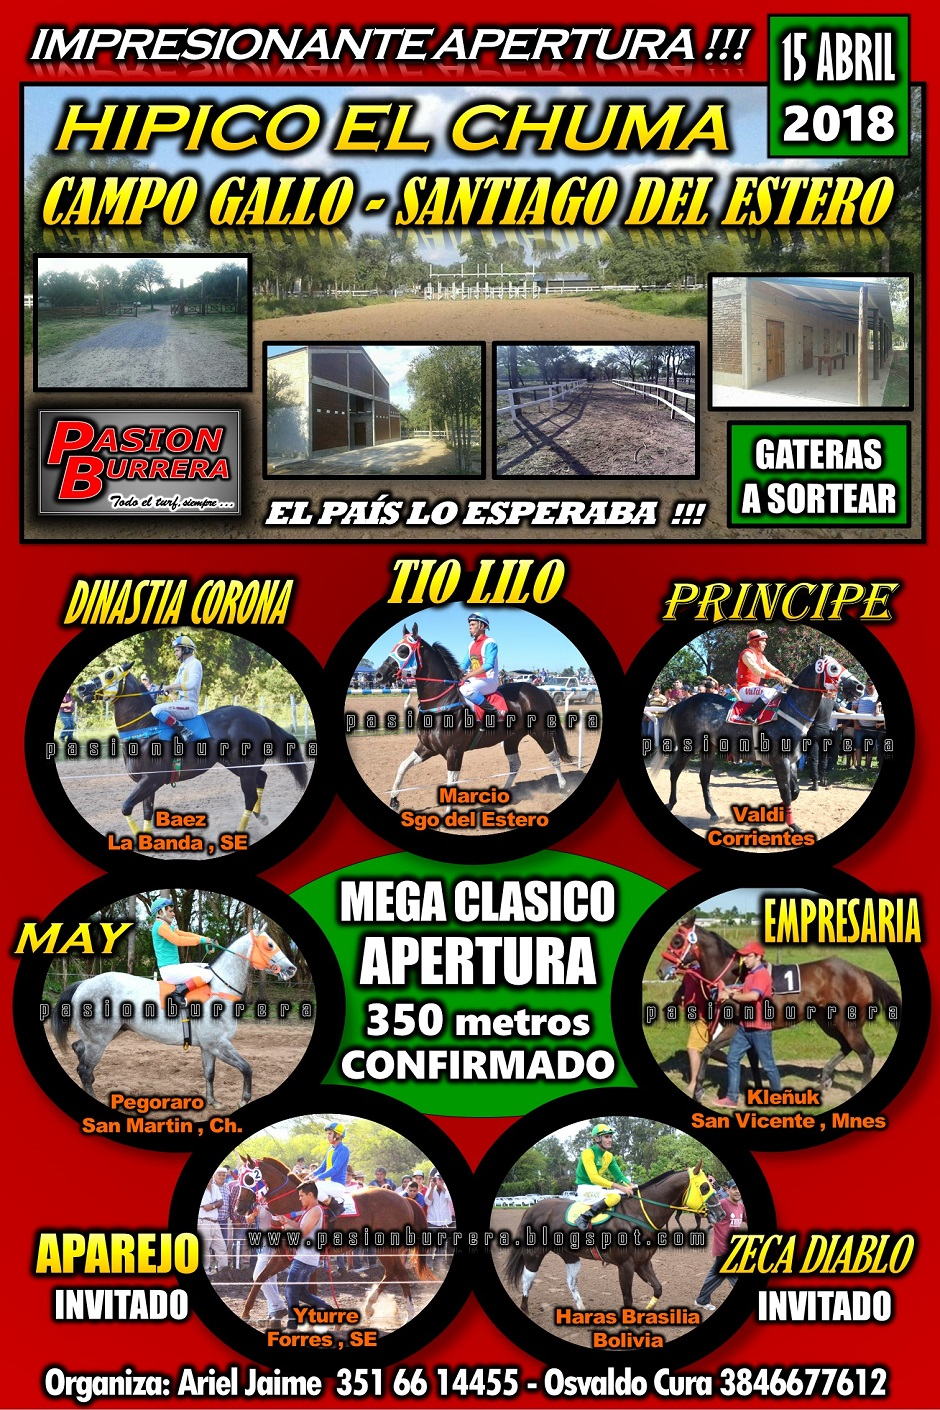 CAMPO GALLO - 15 ABRIL 2018